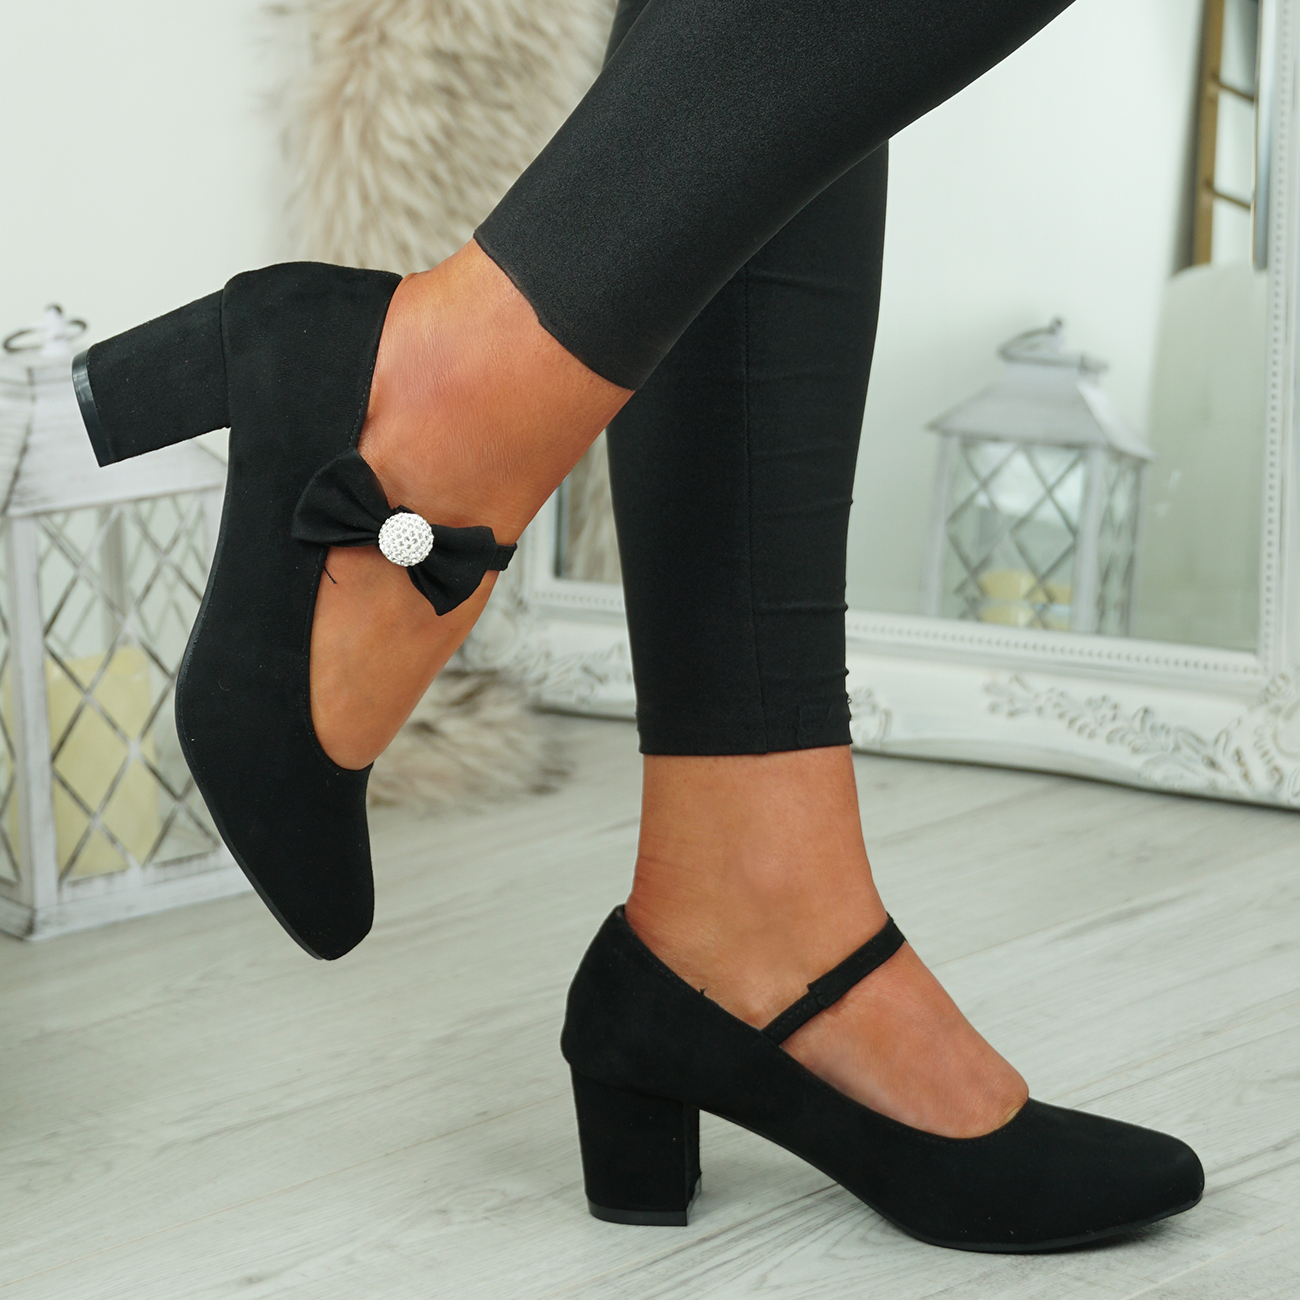 NEW-WOMENS-BLOCK-HEEL-PUMPS-BOW-BUCKLE-STRAP-ROUNDED-TOE-CASUAL-SHOES-SIZE thumbnail 8